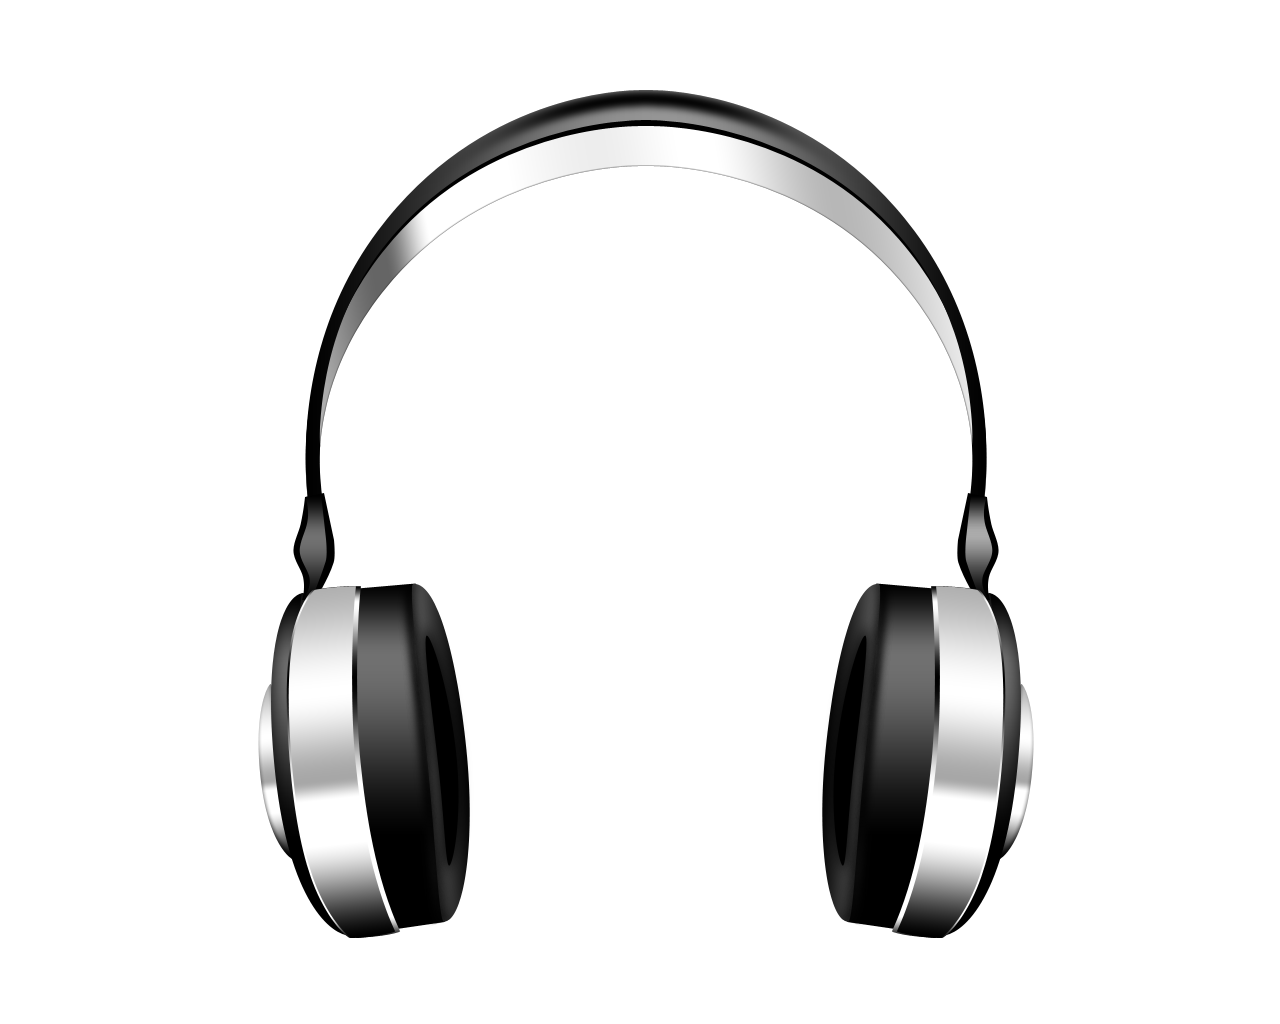 White headphone clipart transparent background transparent stock Headphones PNG Images Transparent Free Download | PNGMart.com transparent stock